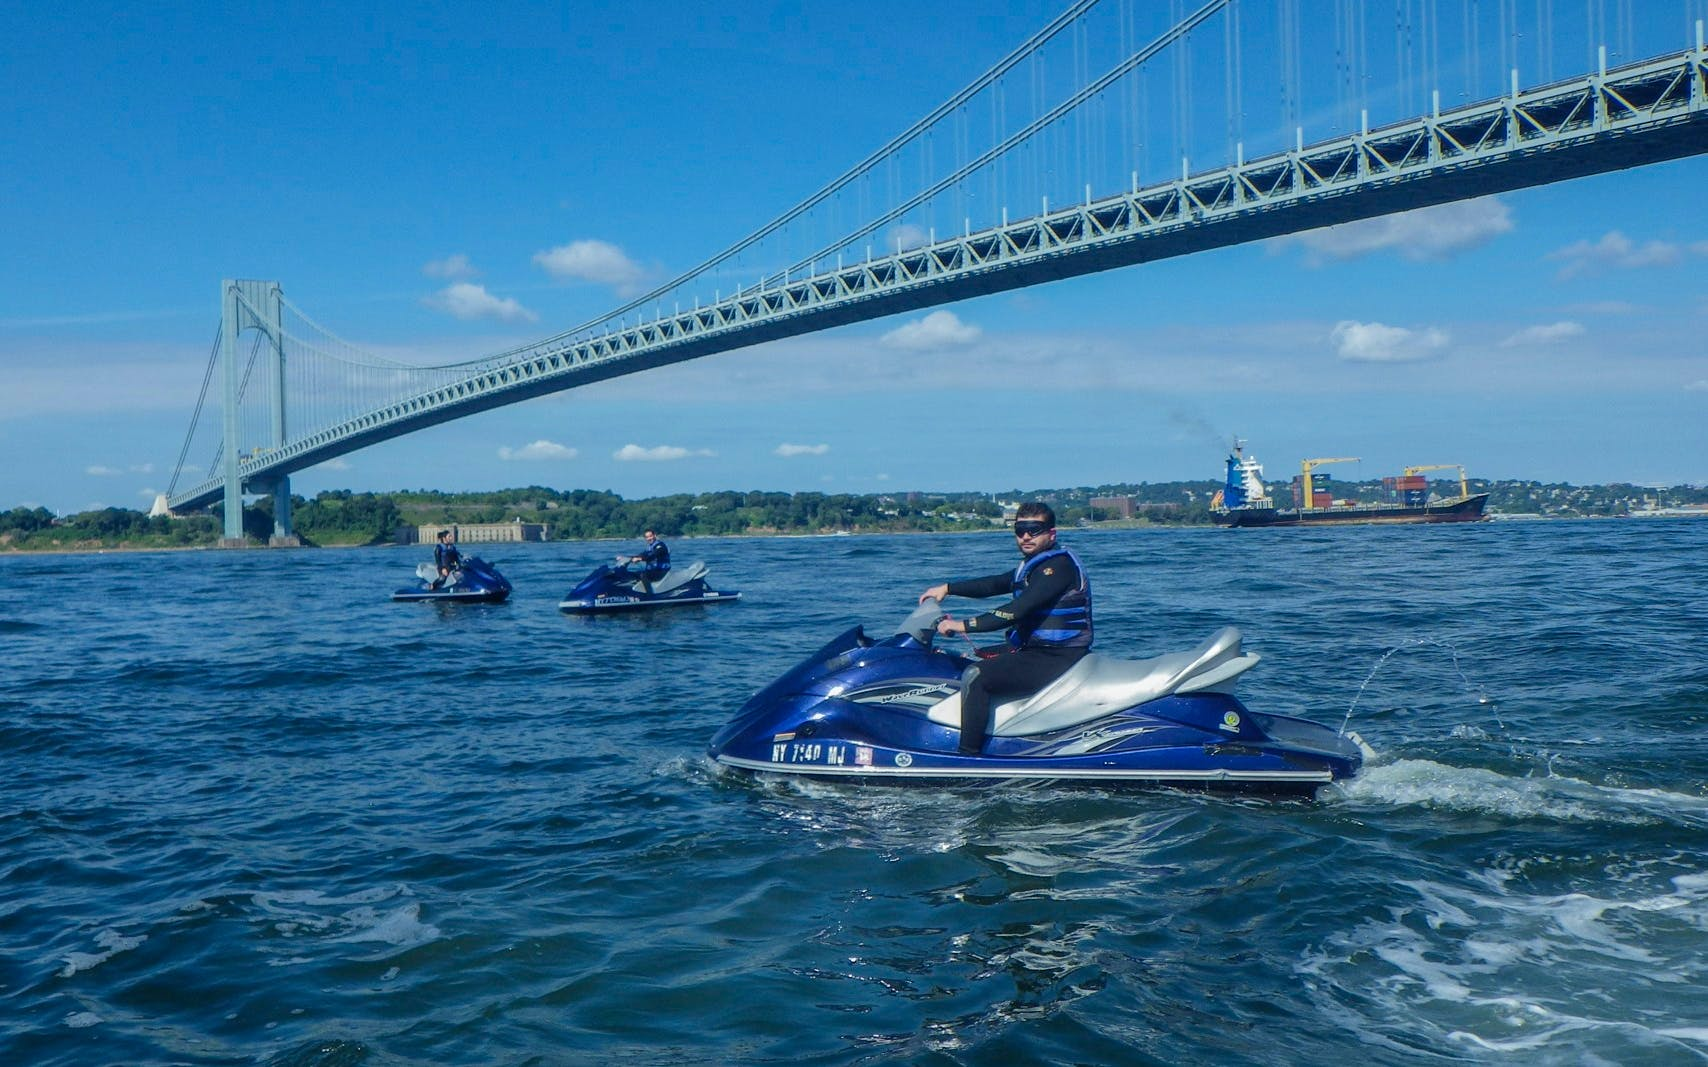 statue of liberty & brooklyn bridge - jet ski tour-2